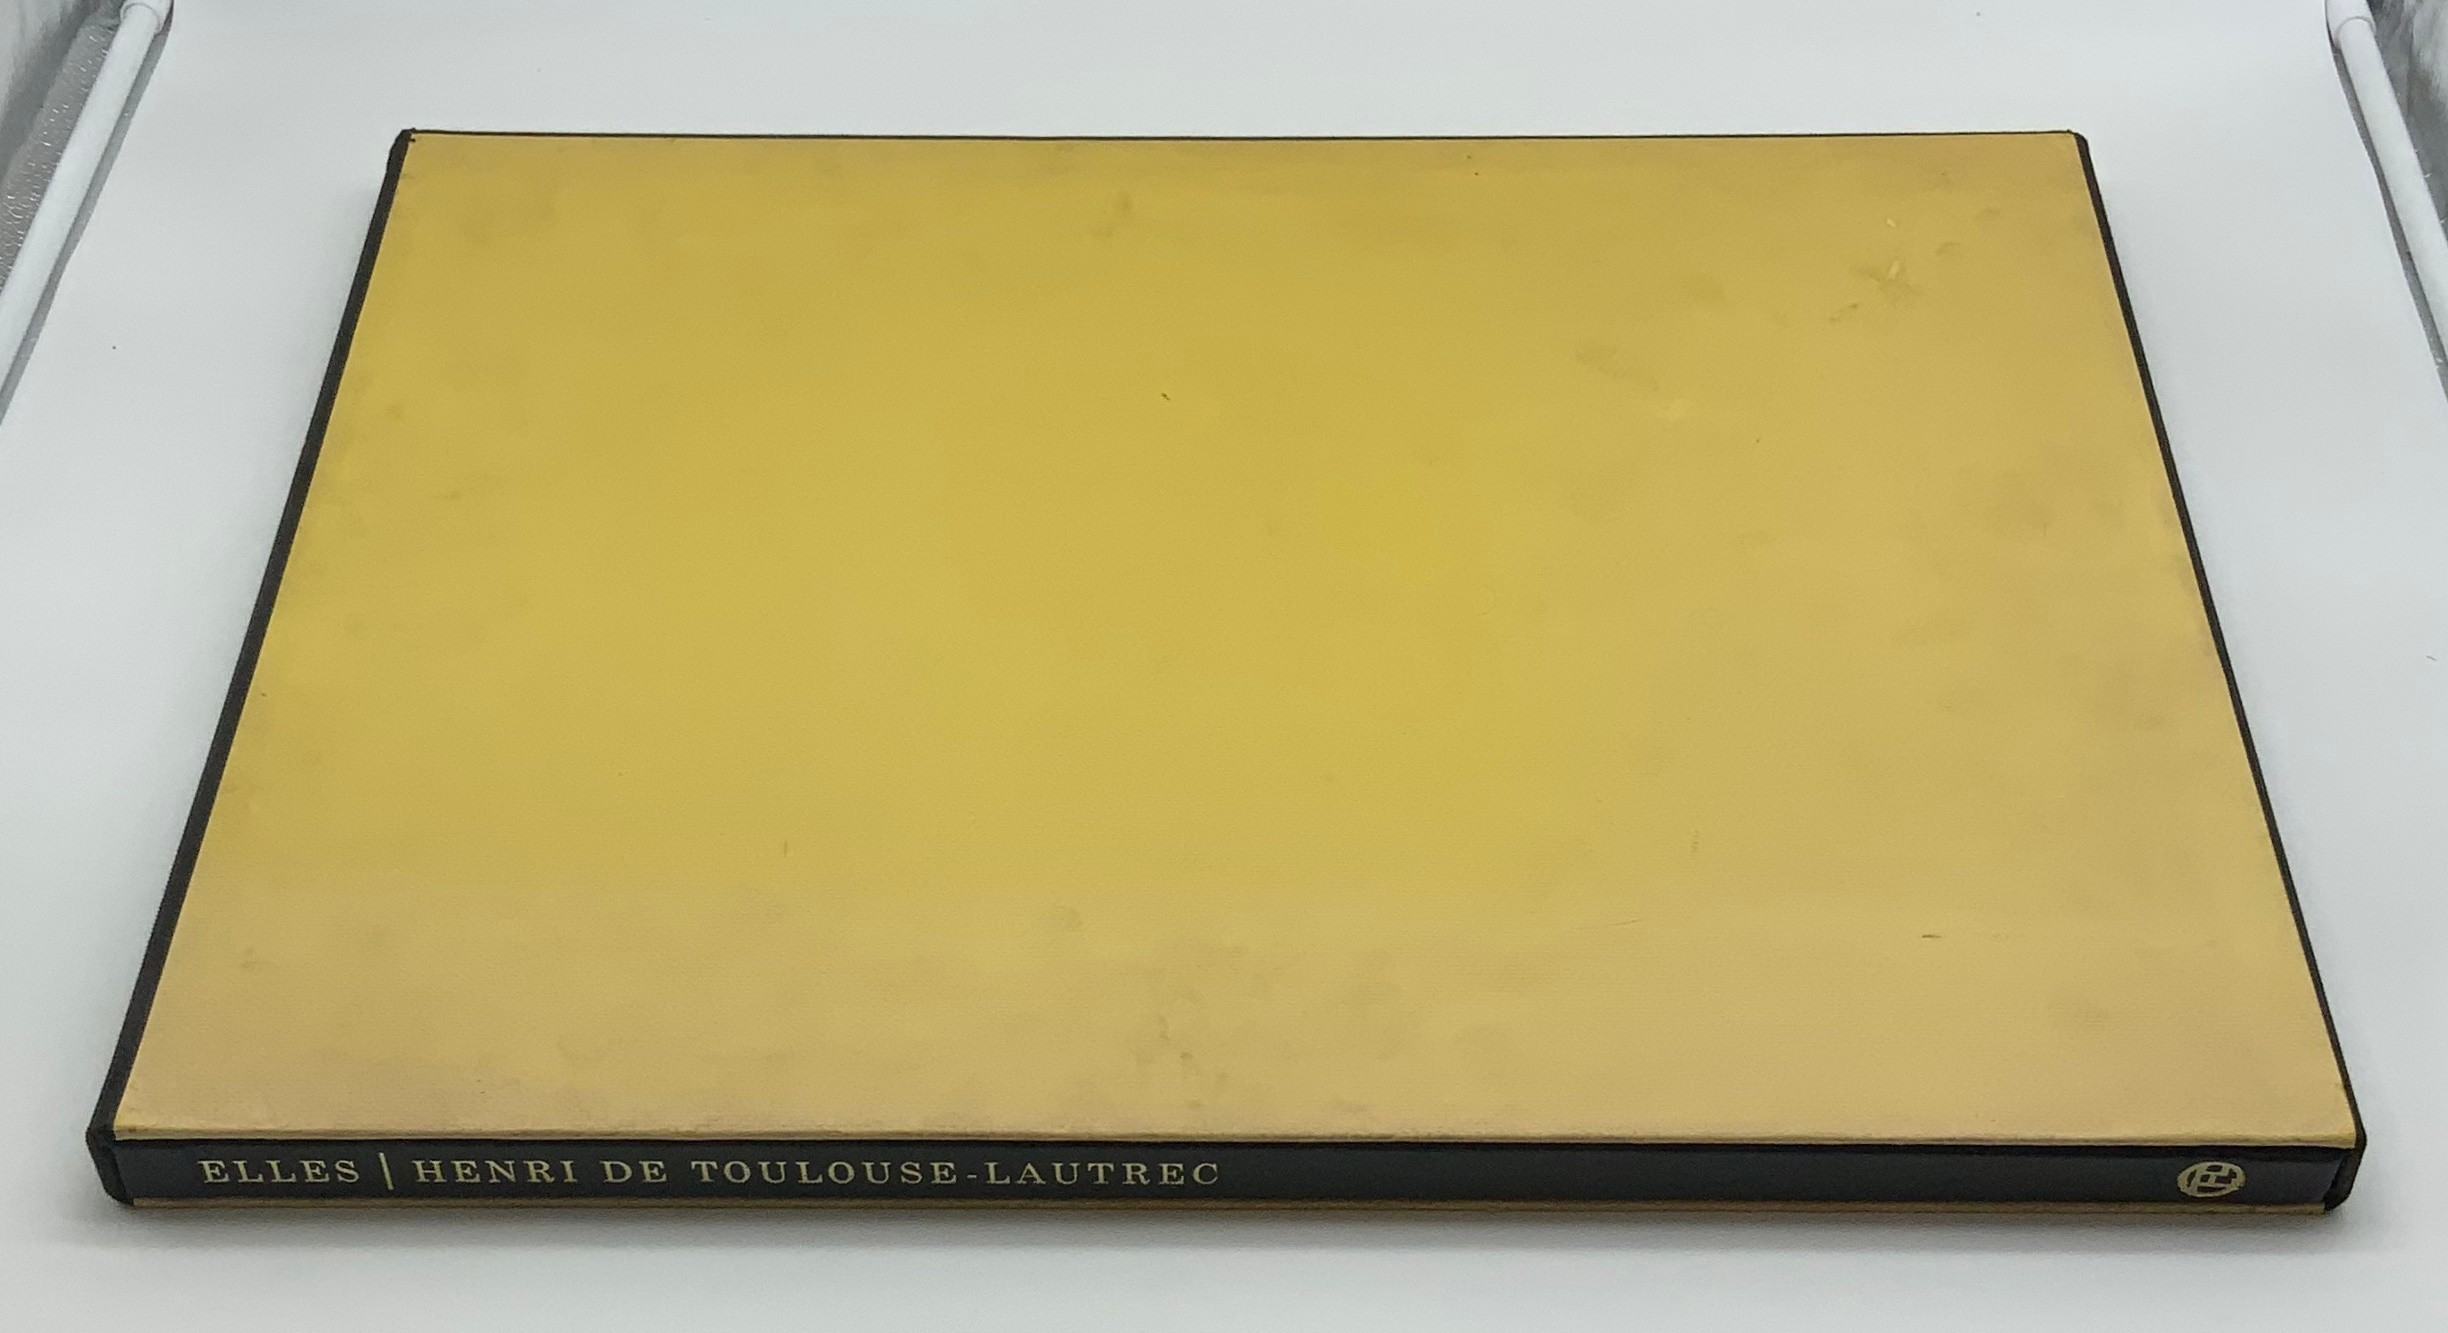 ELLES THE TOULOUSE-LAUTREC CIRCLE, 1969 HARDCOVER 1ST EDITION LIMITED EDITION - Image 6 of 6